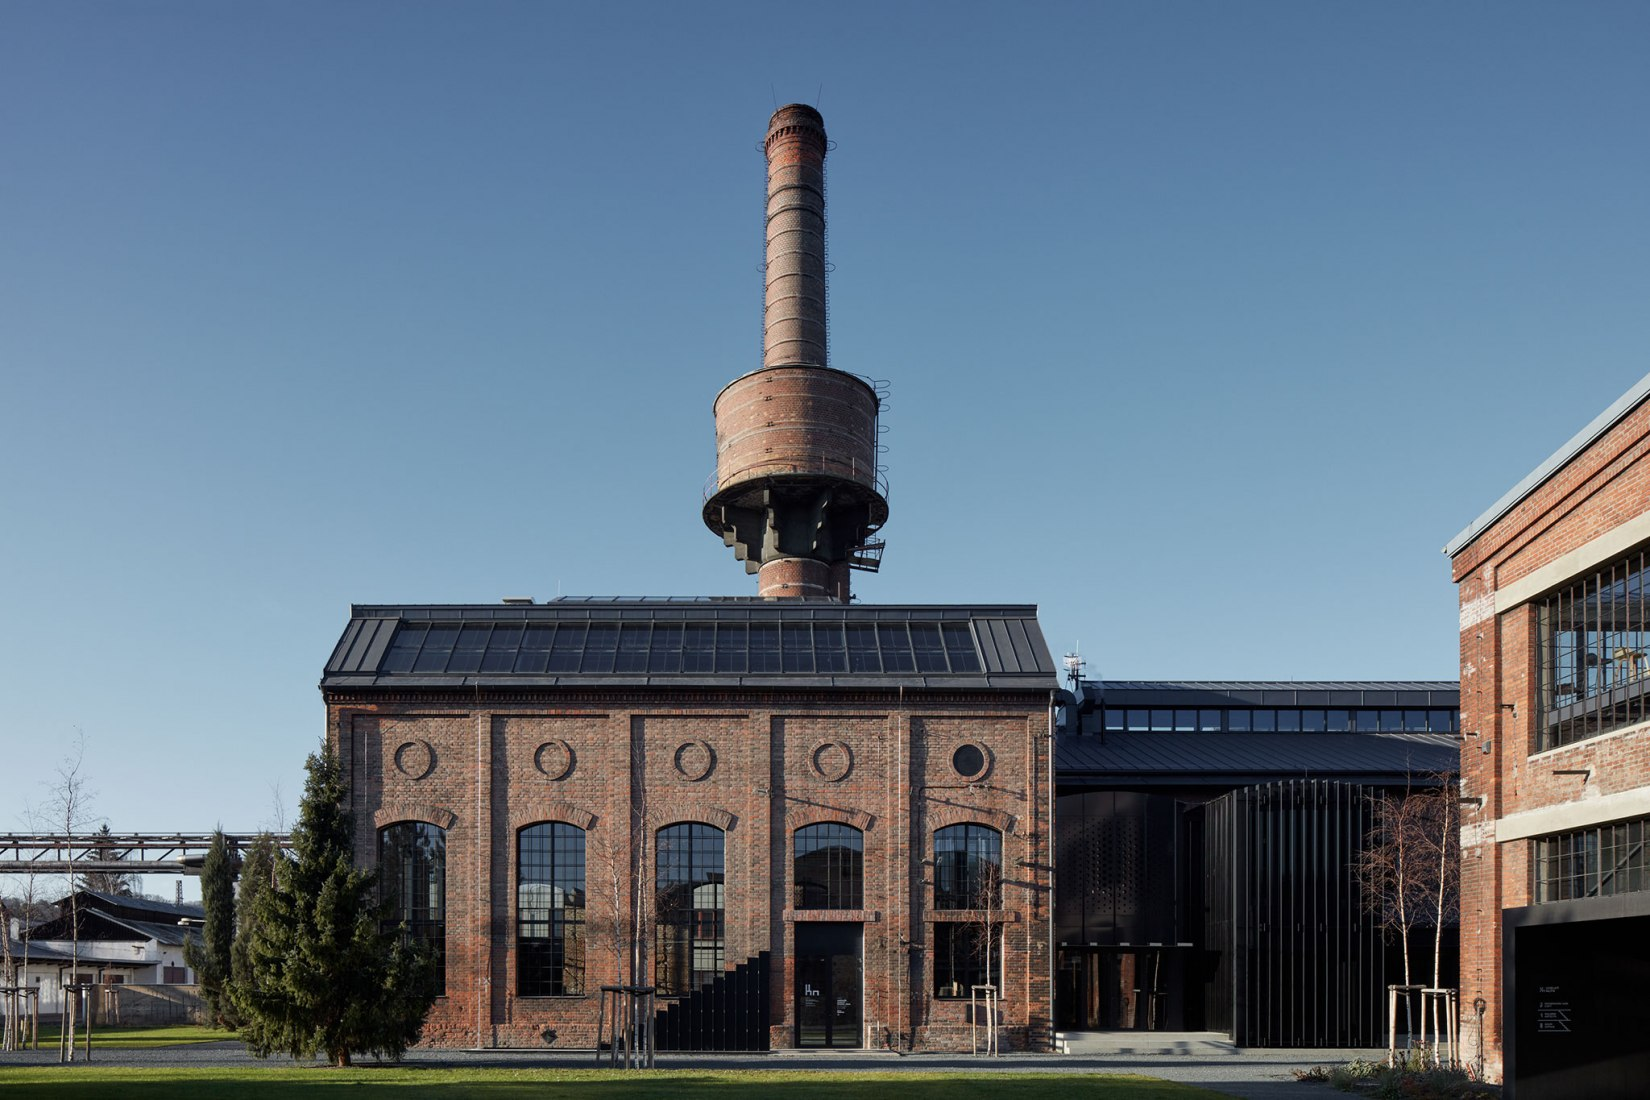 Exterior view. Boiler House reconversion by Atelier Hoffman. Photograph © Jakub Skokan and Martin Tůma / BoysPlayNice